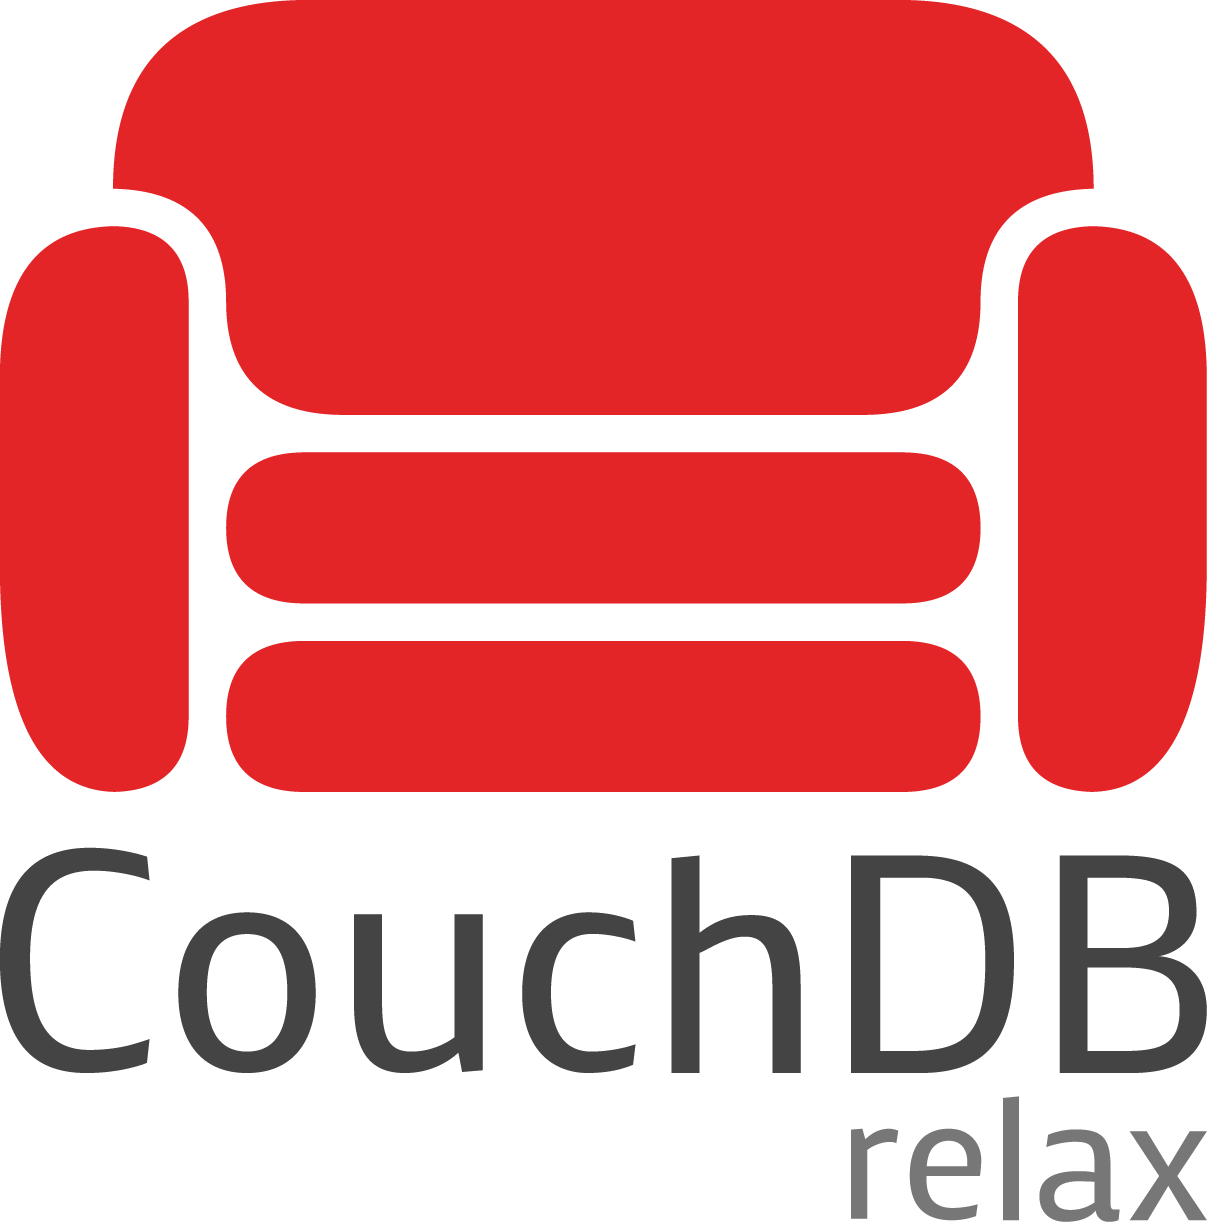 /running-a-couchdb-2-0-cluster-in-production-on-aws-with-docker-50f745d4bdbc feature image